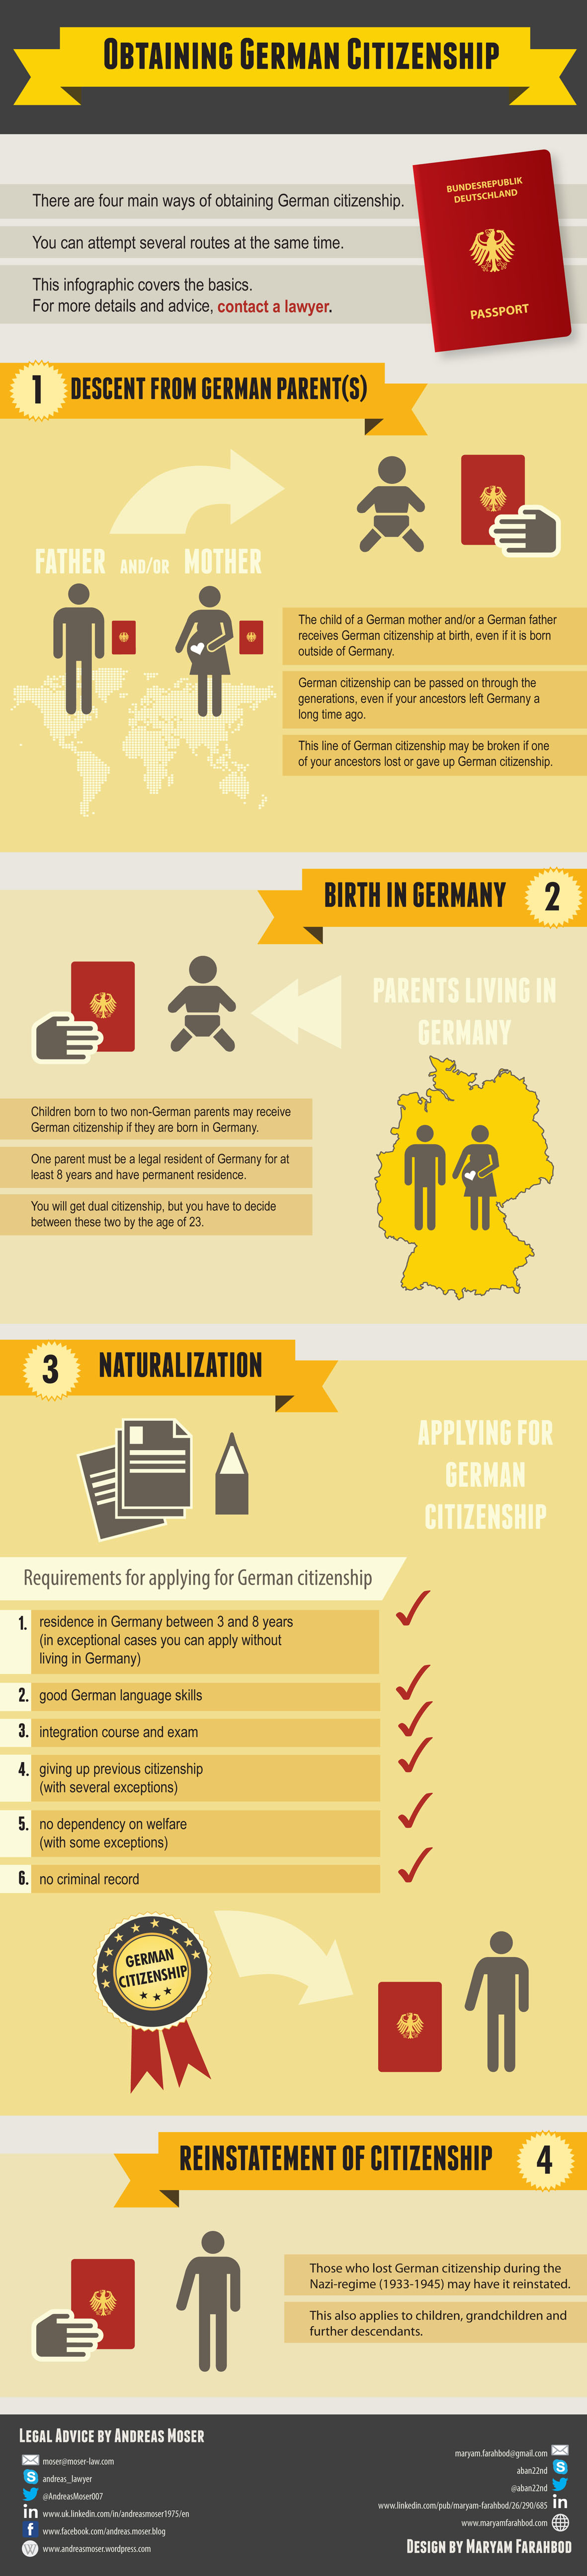 dual citizenship and naturalization laws essay